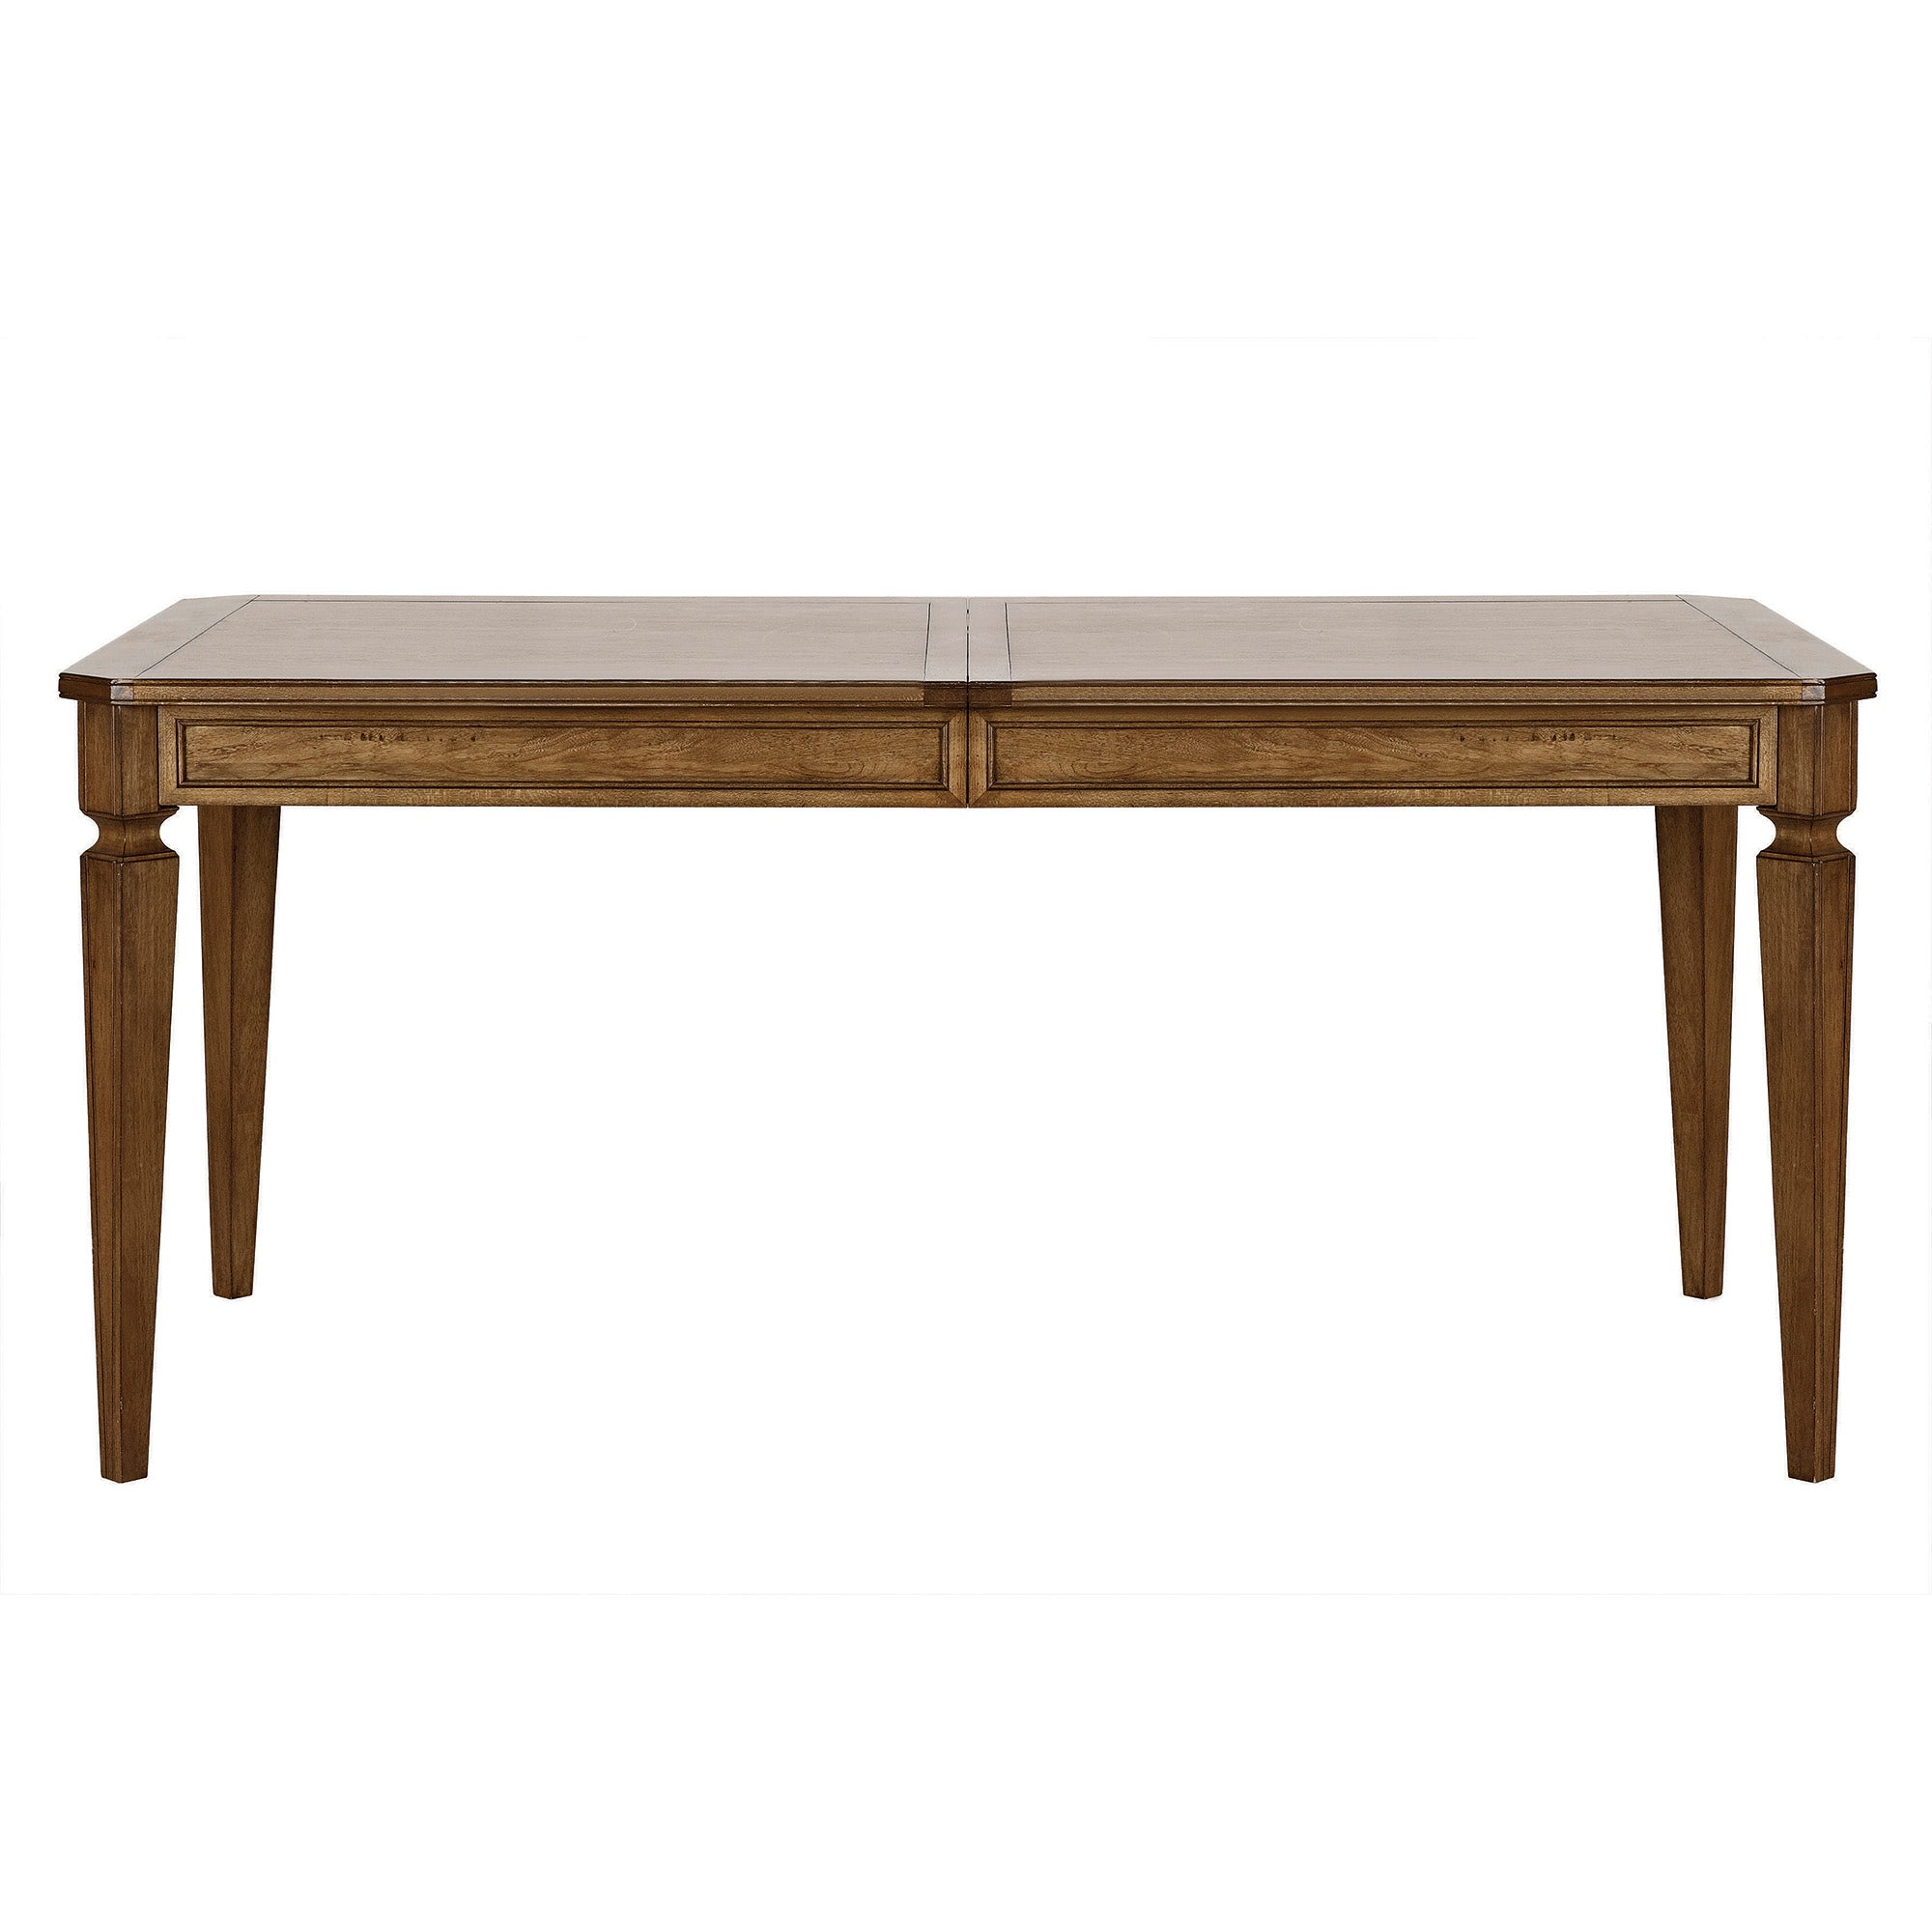 Buy cheap Small extending dining table compare Furniture  : 1000041048main from super.priceinspector.co.uk size 550 x 550 jpeg 23kB